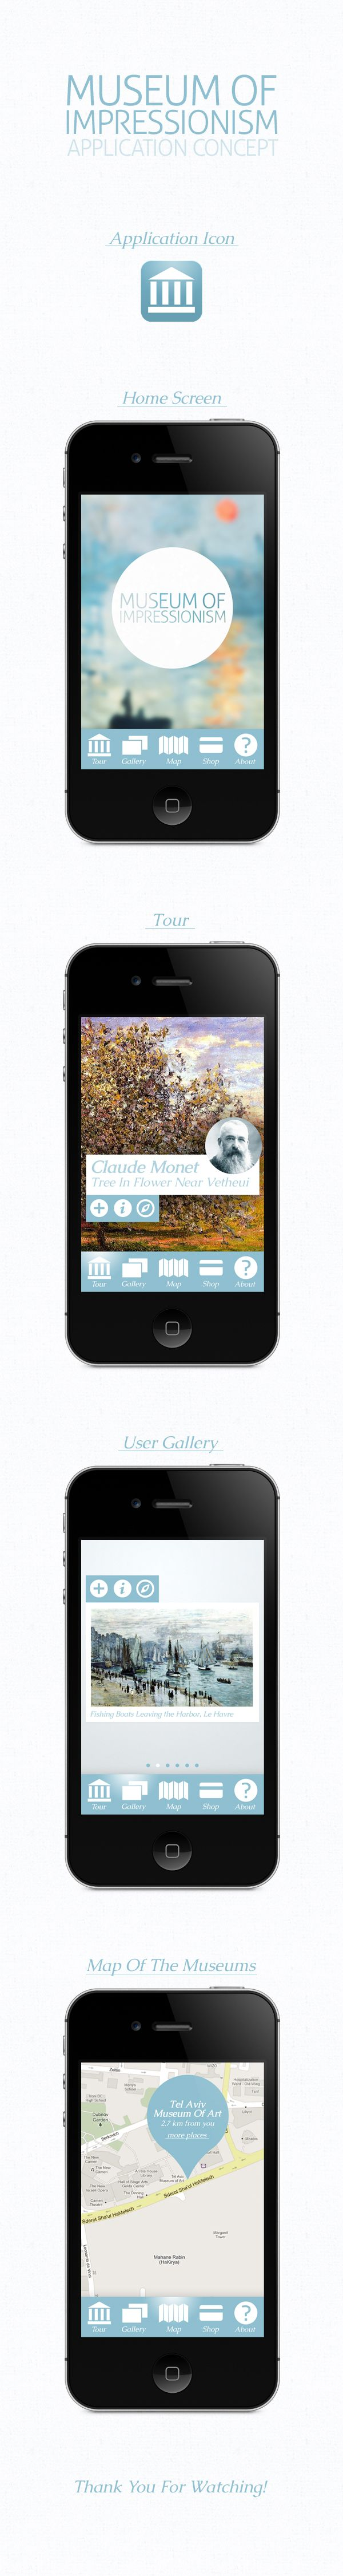 Museum Of Impressionism App Concept by Denis Korytchenko, via Behance